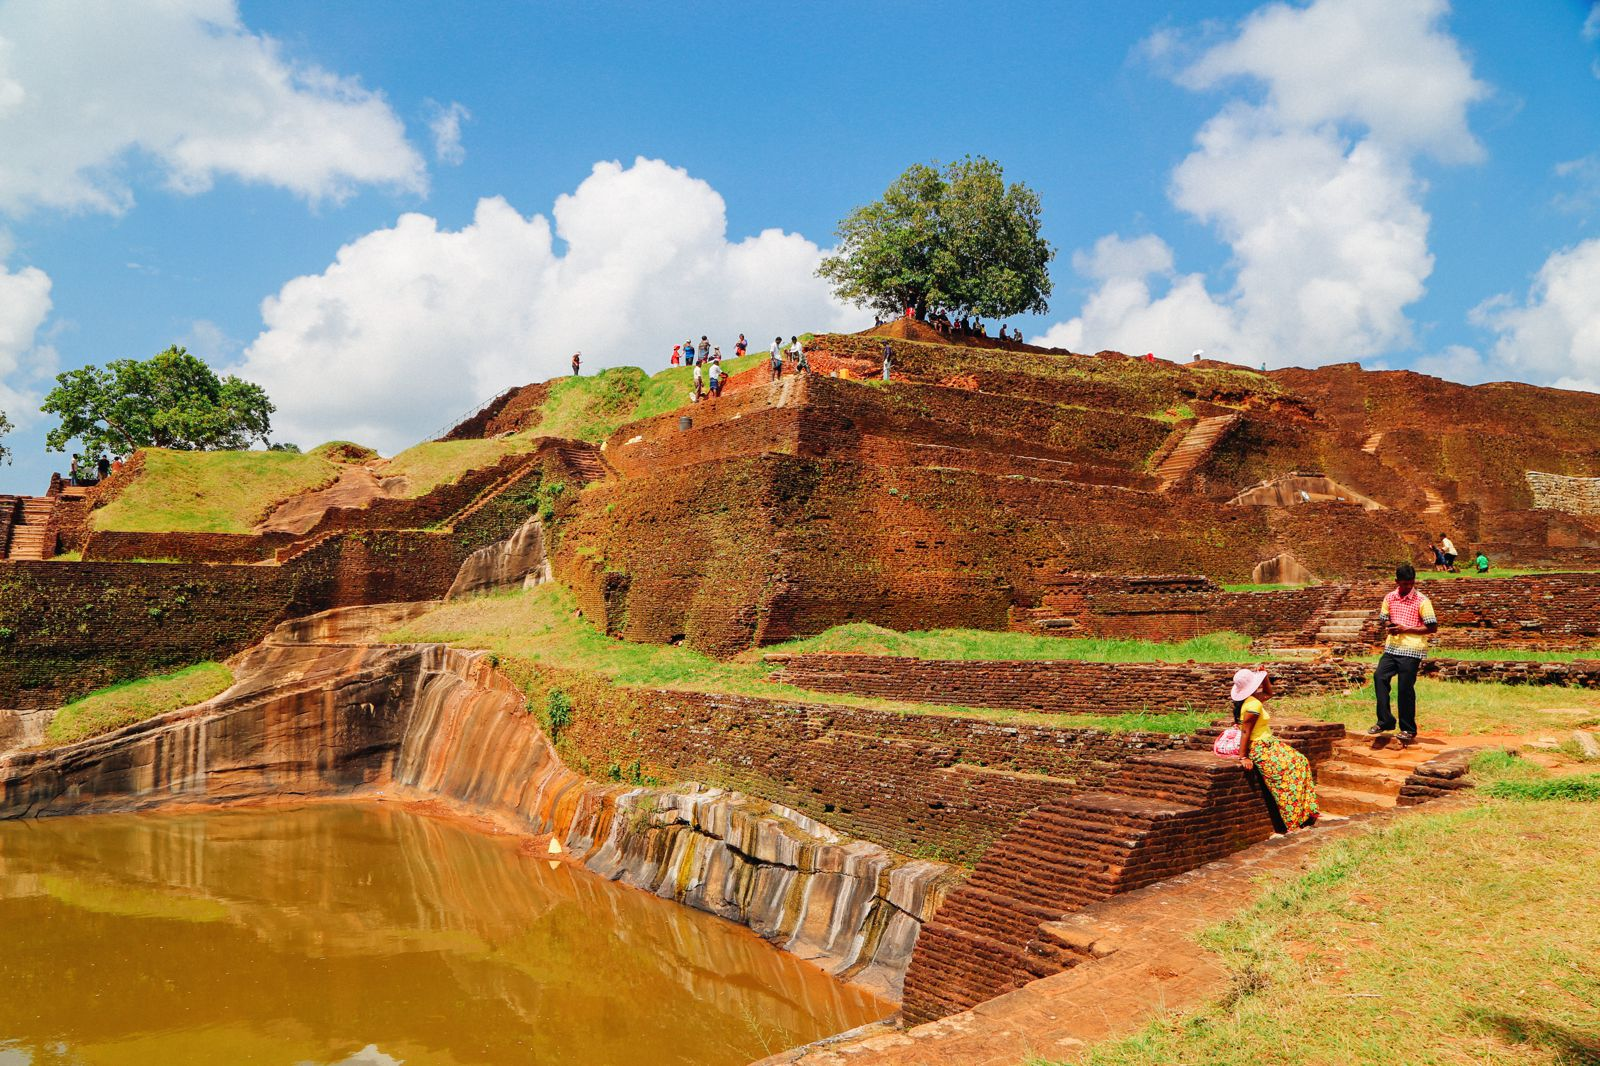 The Complete Guide To Climbing Sri Lanka's UNESCO World Heritage Site Of Sigiriya - Lion Rock (57)